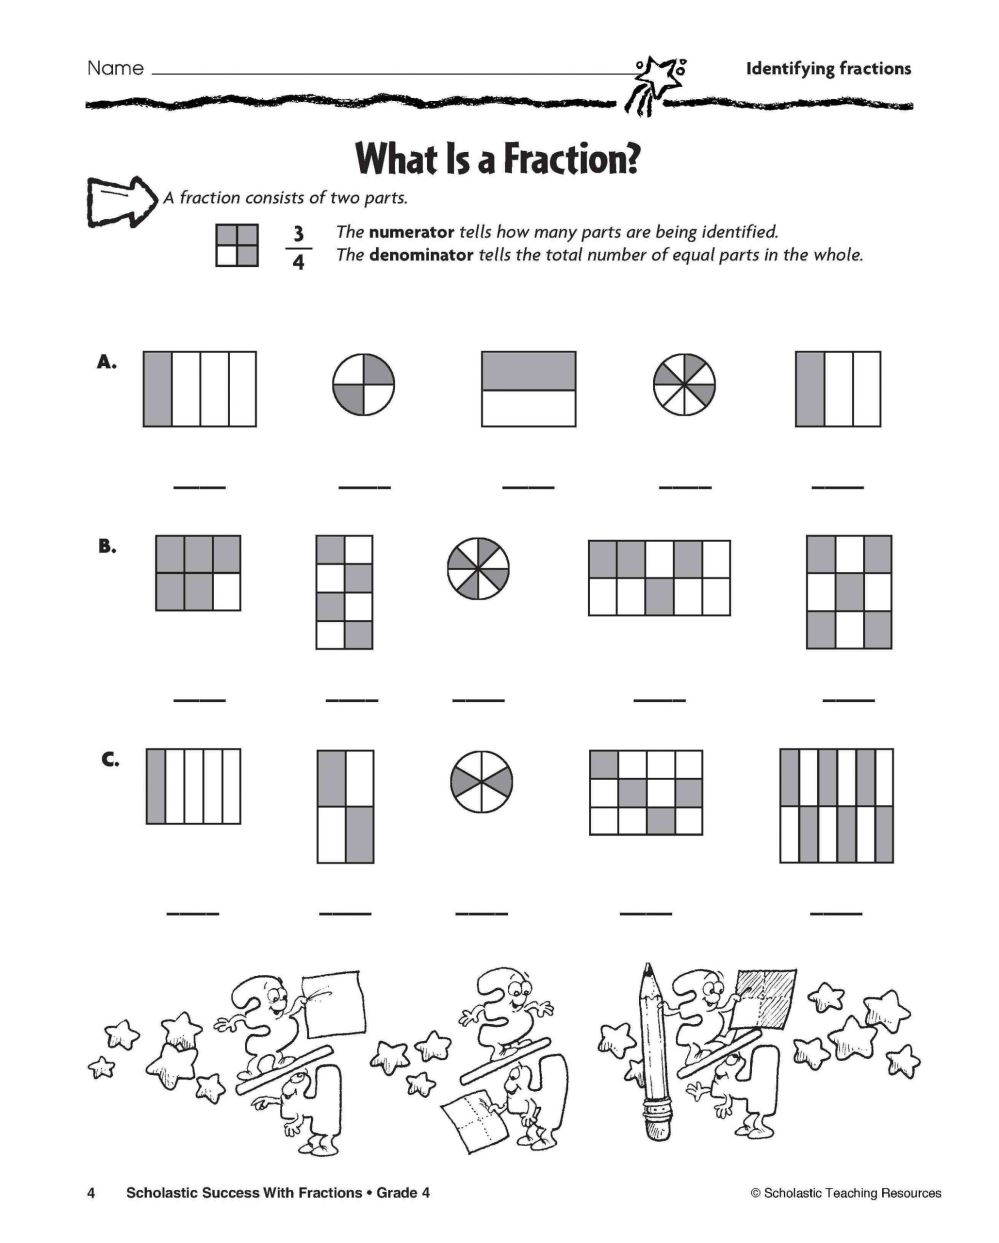 medium resolution of 4 Free Math Worksheets Third Grade 3 Fractions and Decimals Subtracting  Fractions Like Denominators - apocalomegaproductions.com